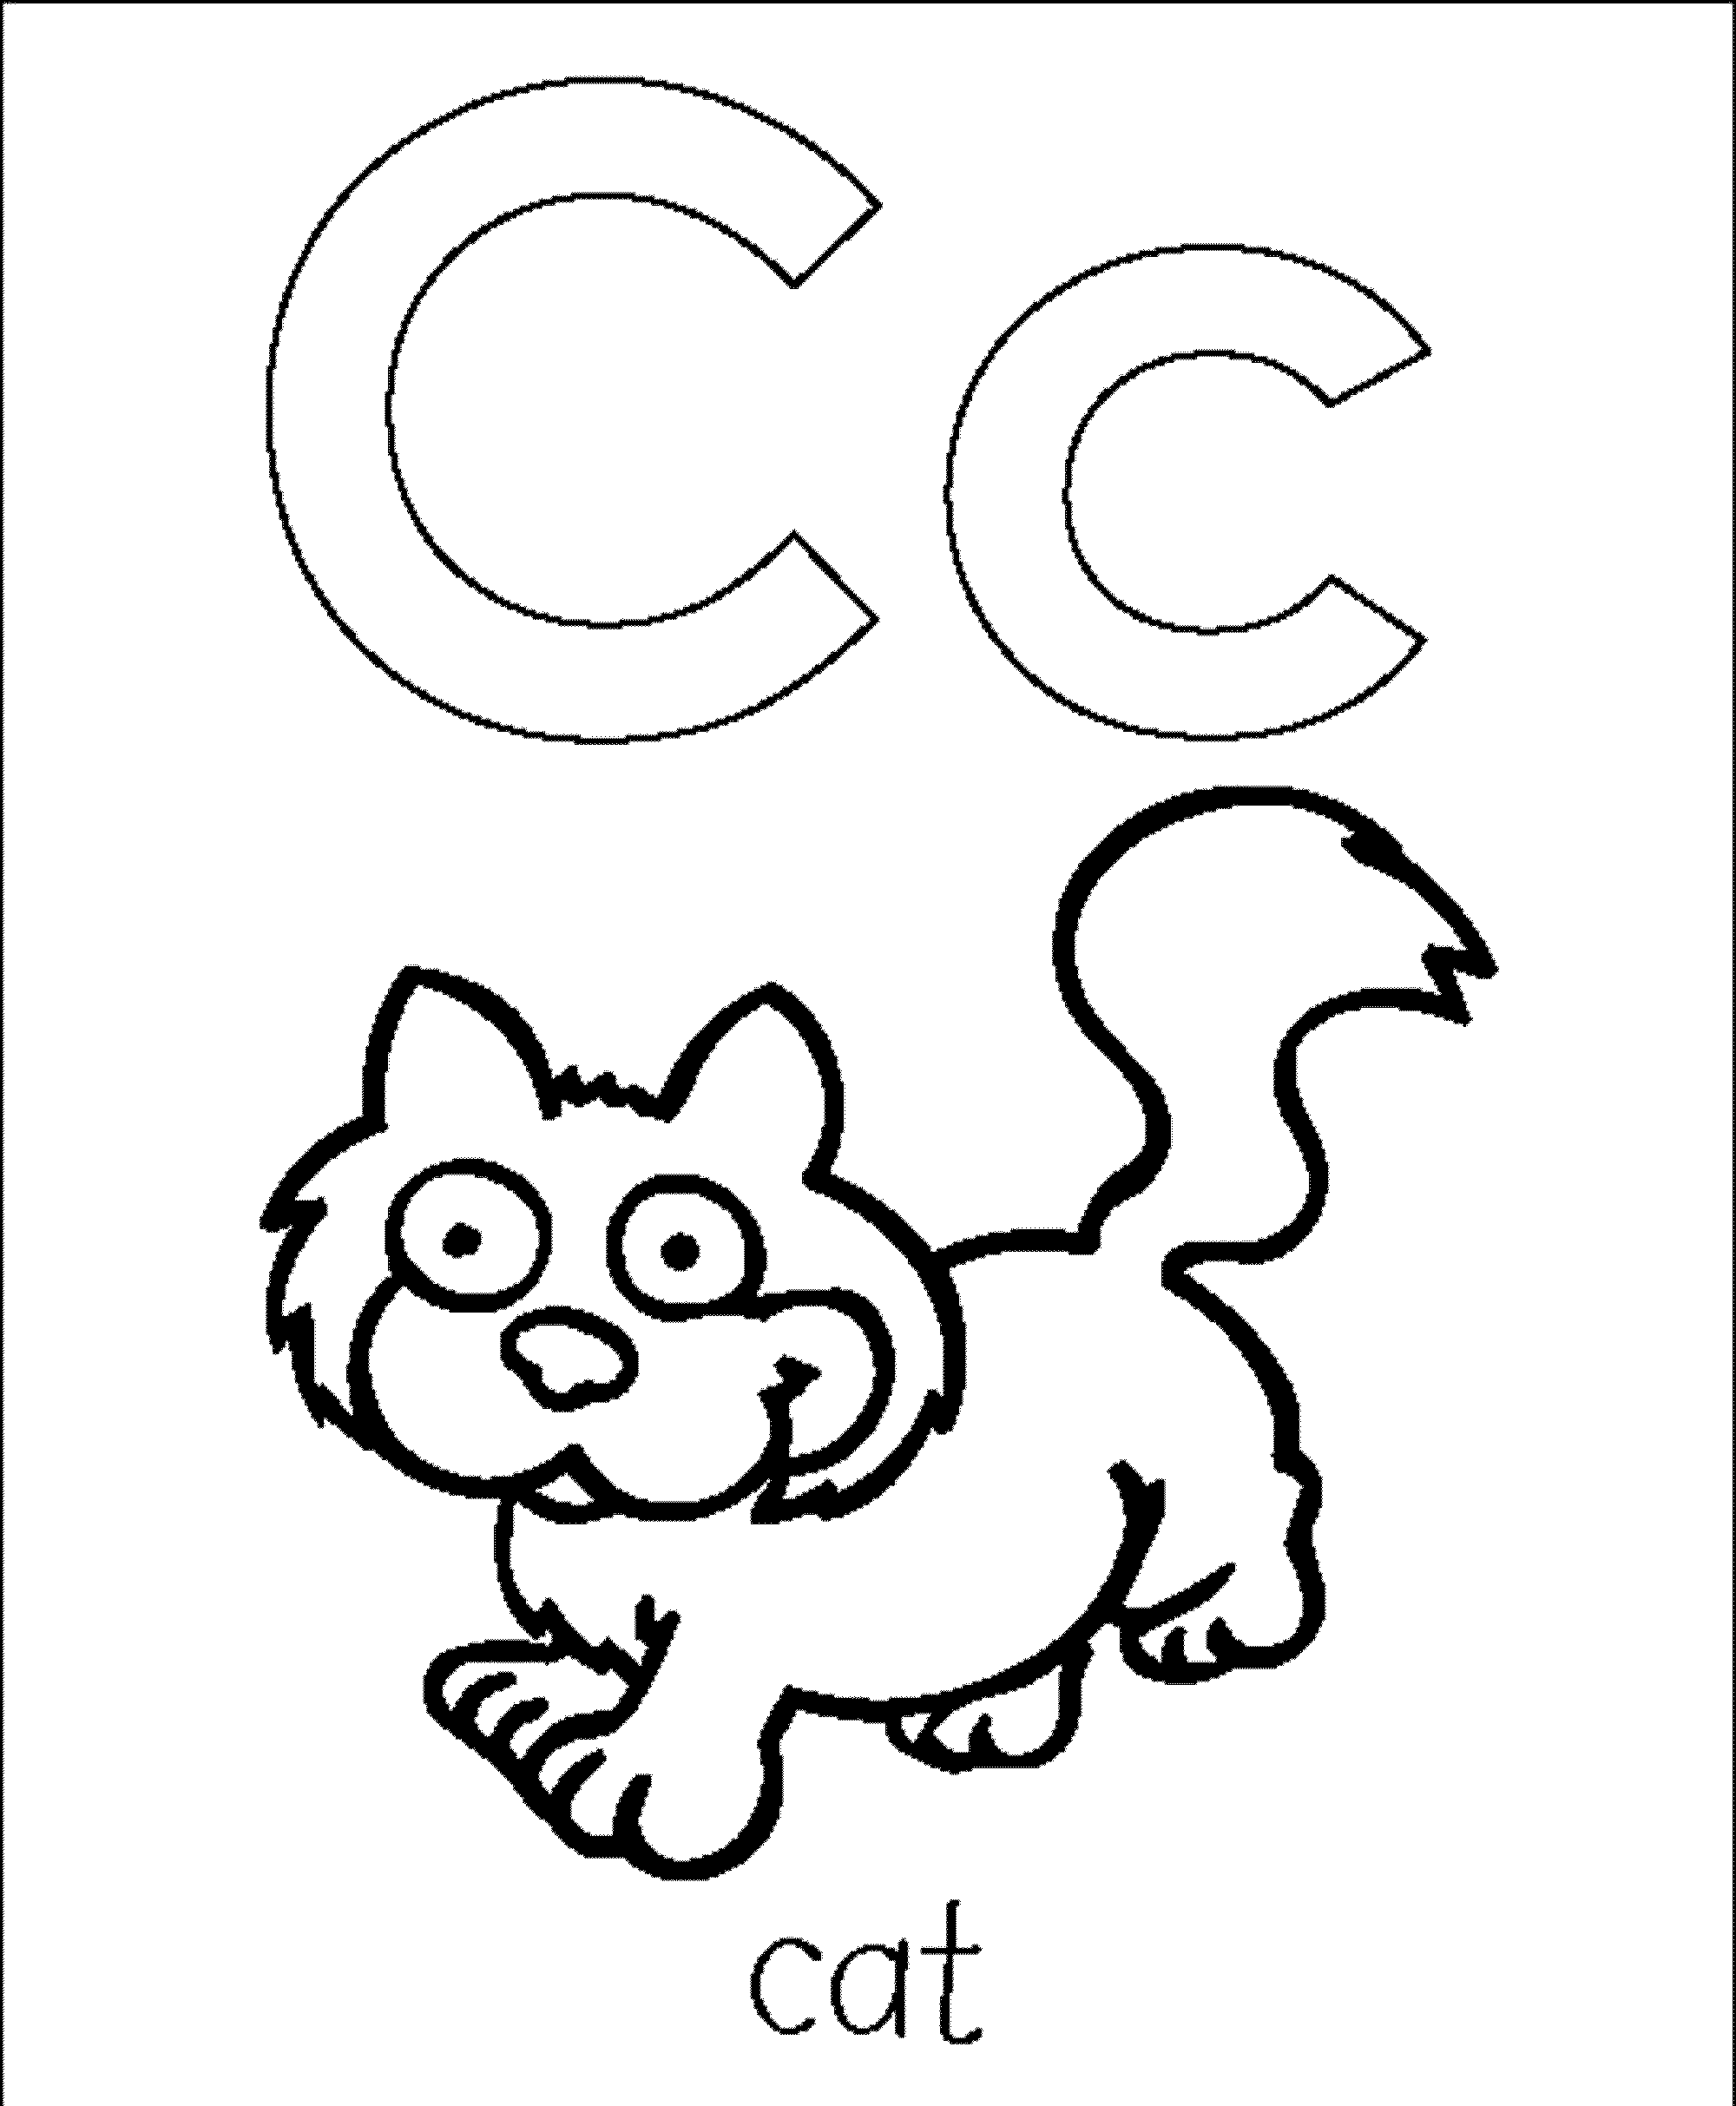 16 Free Pictures for: Letter C Coloring Pages. Temoon.us